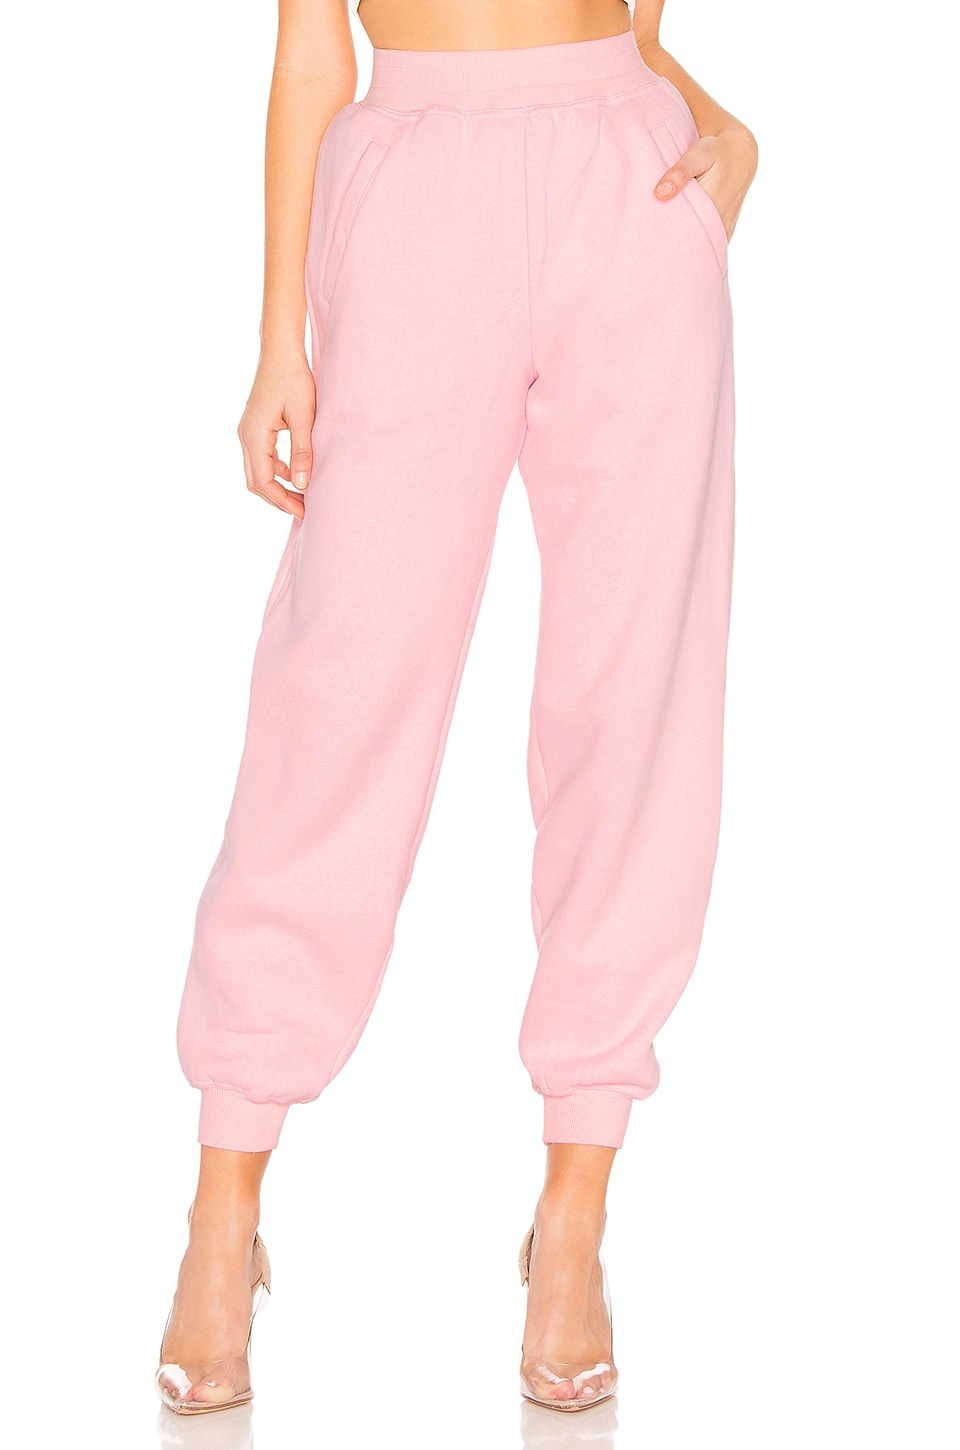 Lovers + Friends Charlie Jogger Pant in Light Pink